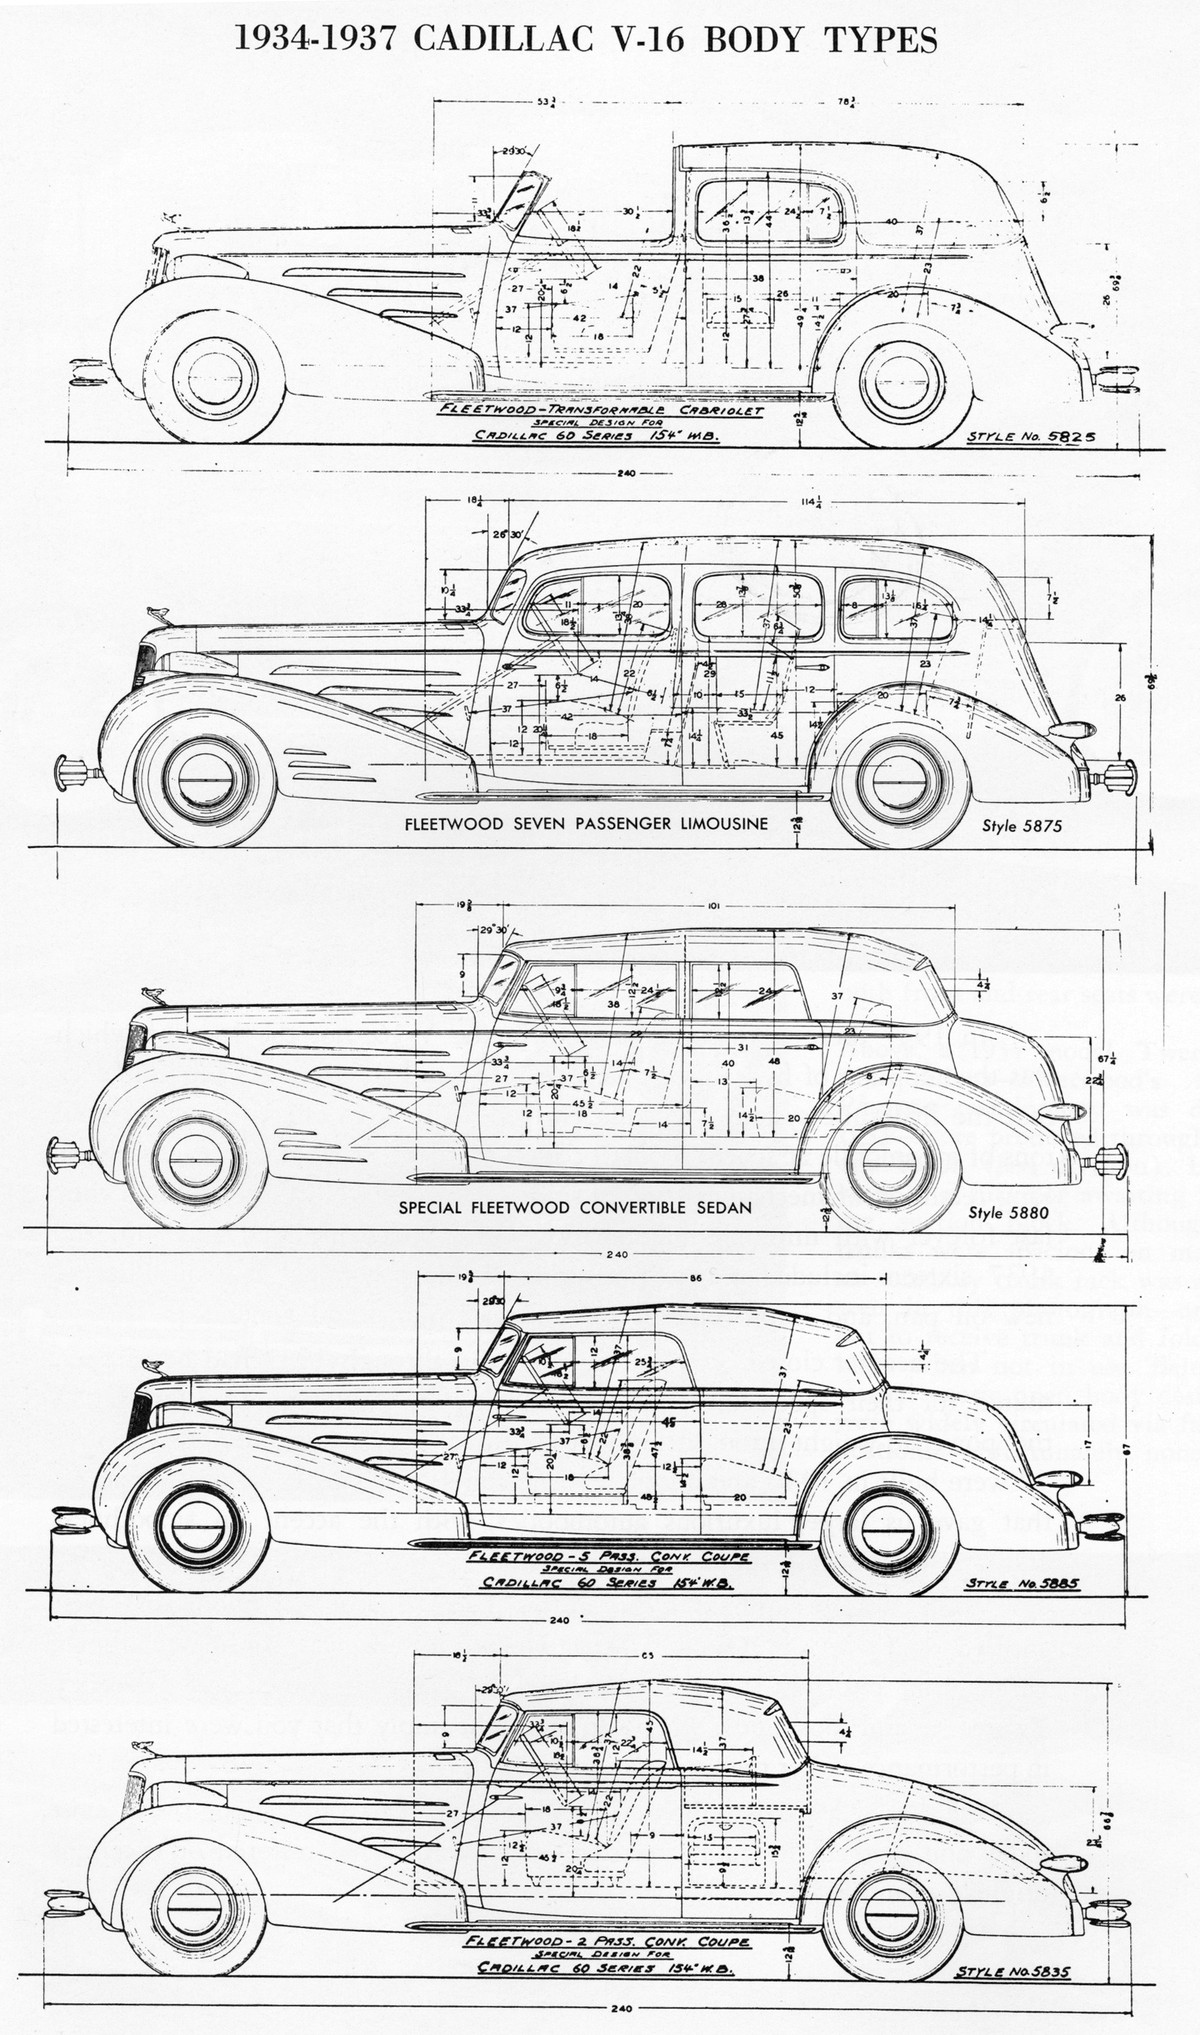 Cadillac v 16 body types 1934 1937 blueprint download free cadillac v 16 blueprint malvernweather Image collections